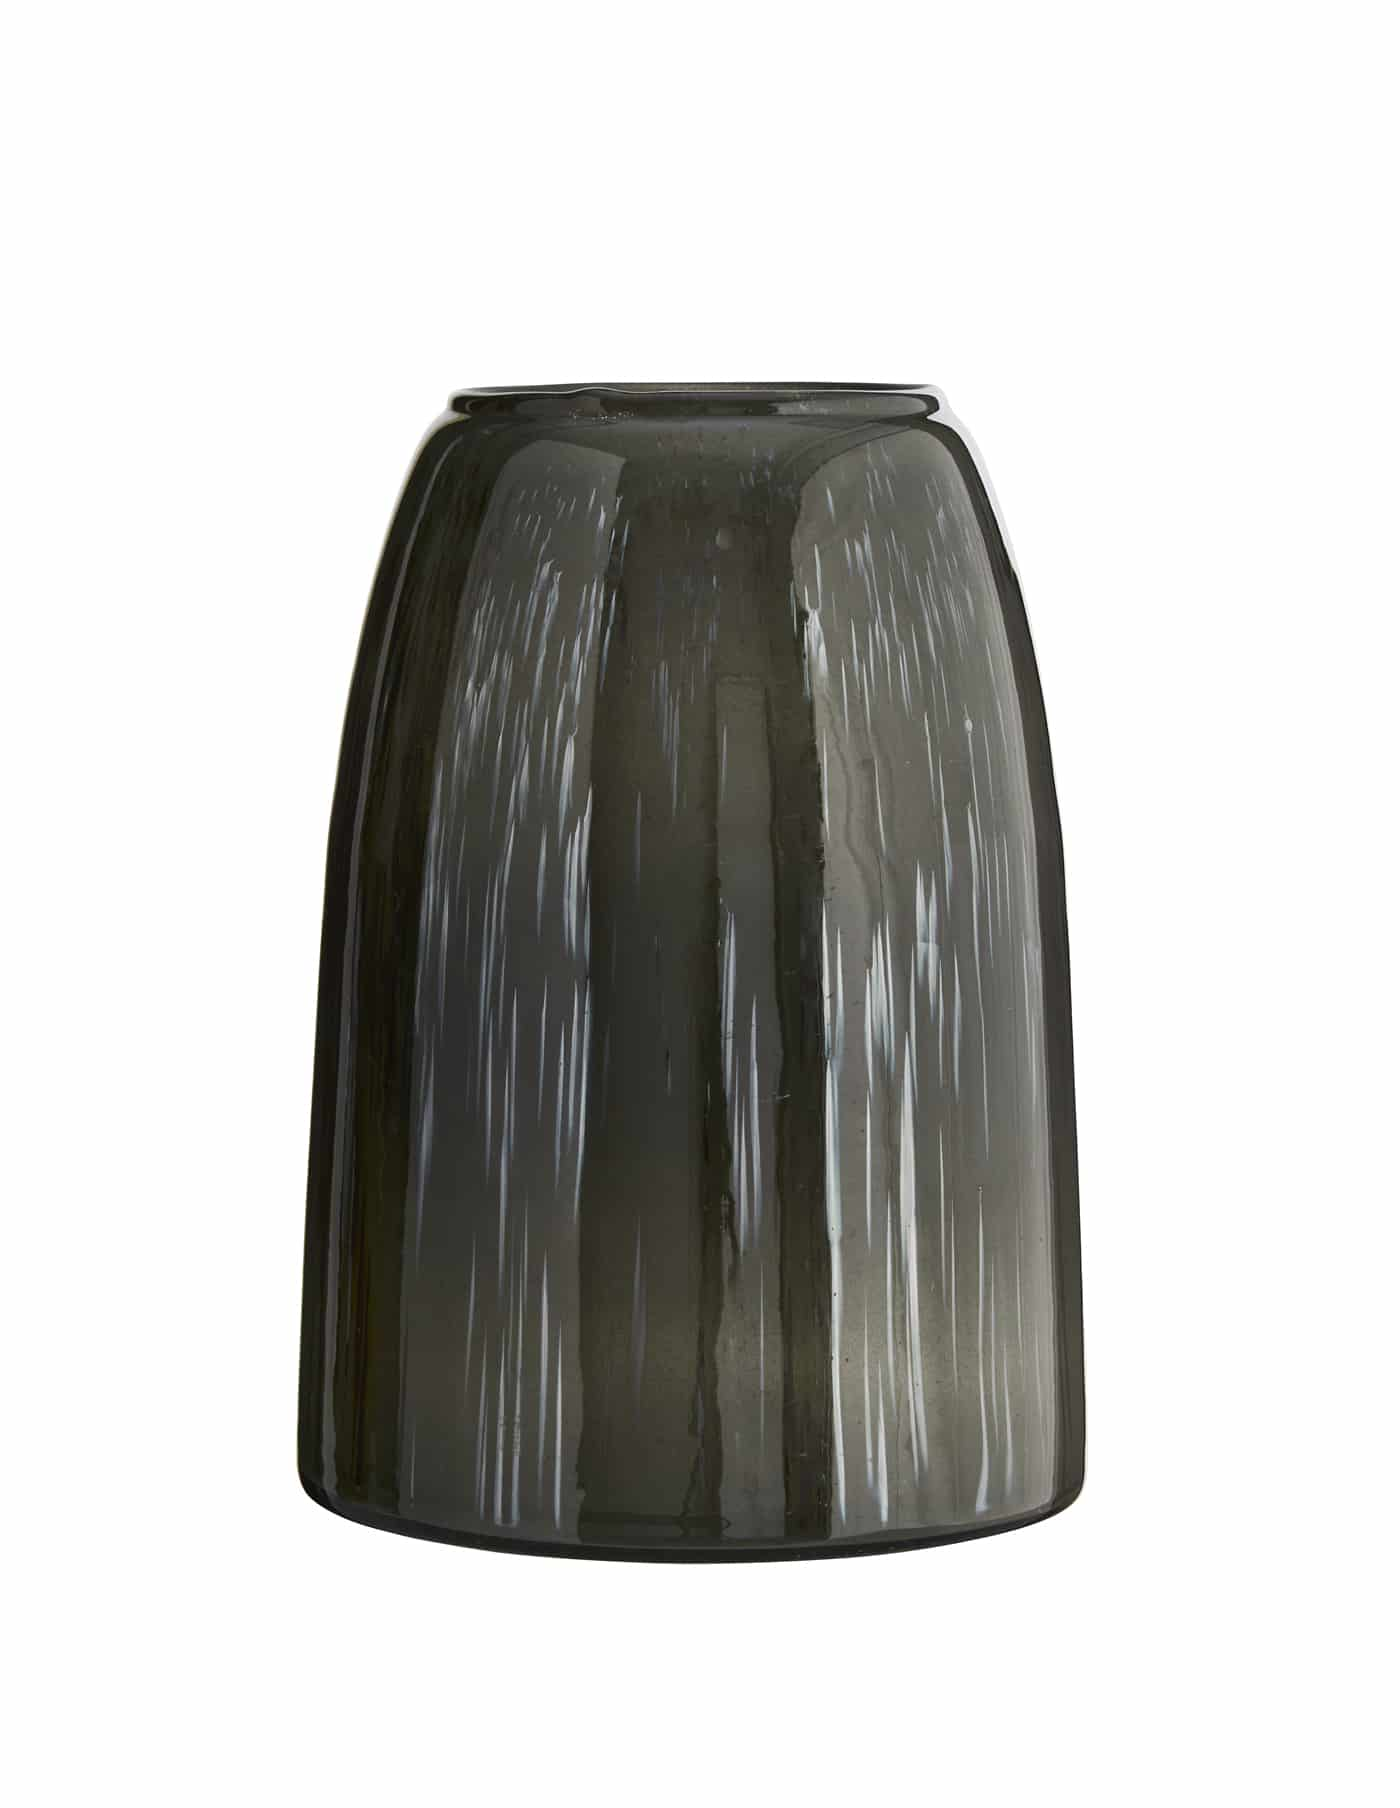 Grey Tonal Glass Vase, Madam Stoltz